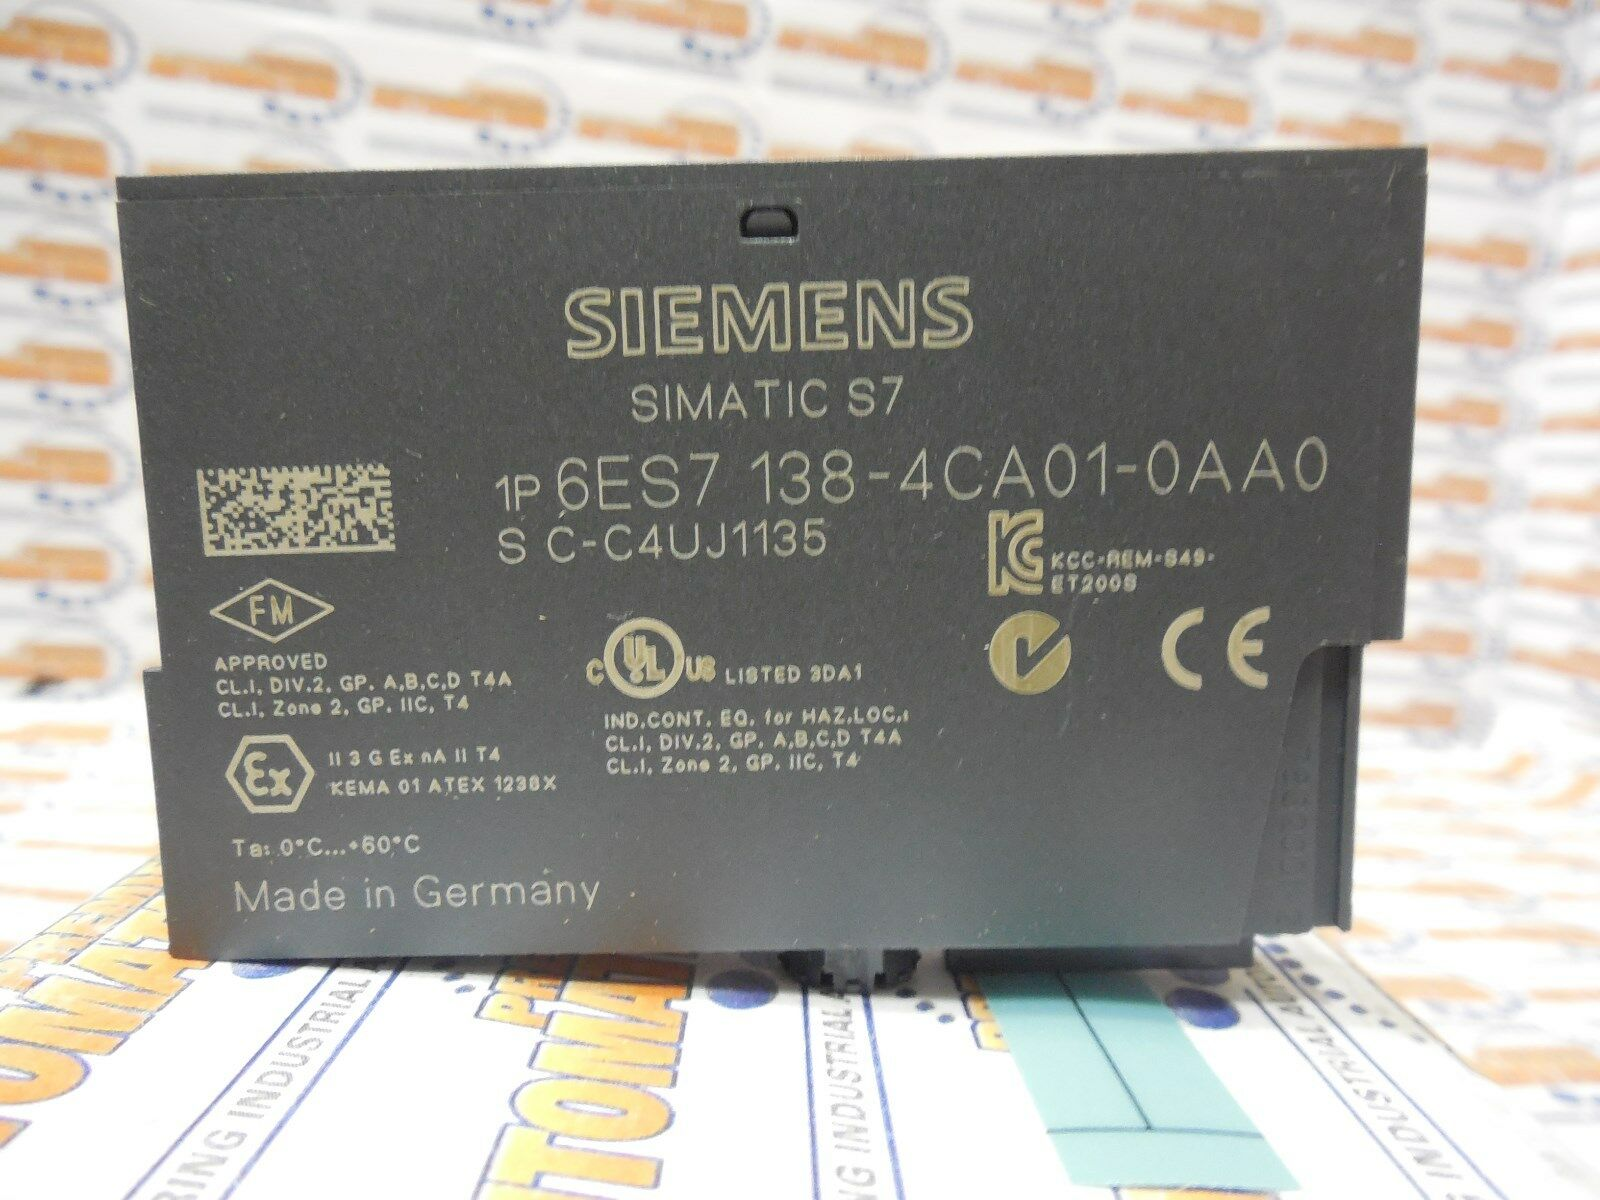 s l1600 siemens 6es7138 4ca01 0aa0 et 200s distributed i o power module pm 6es7138-4ca01-0aa0 wiring diagram at sewacar.co